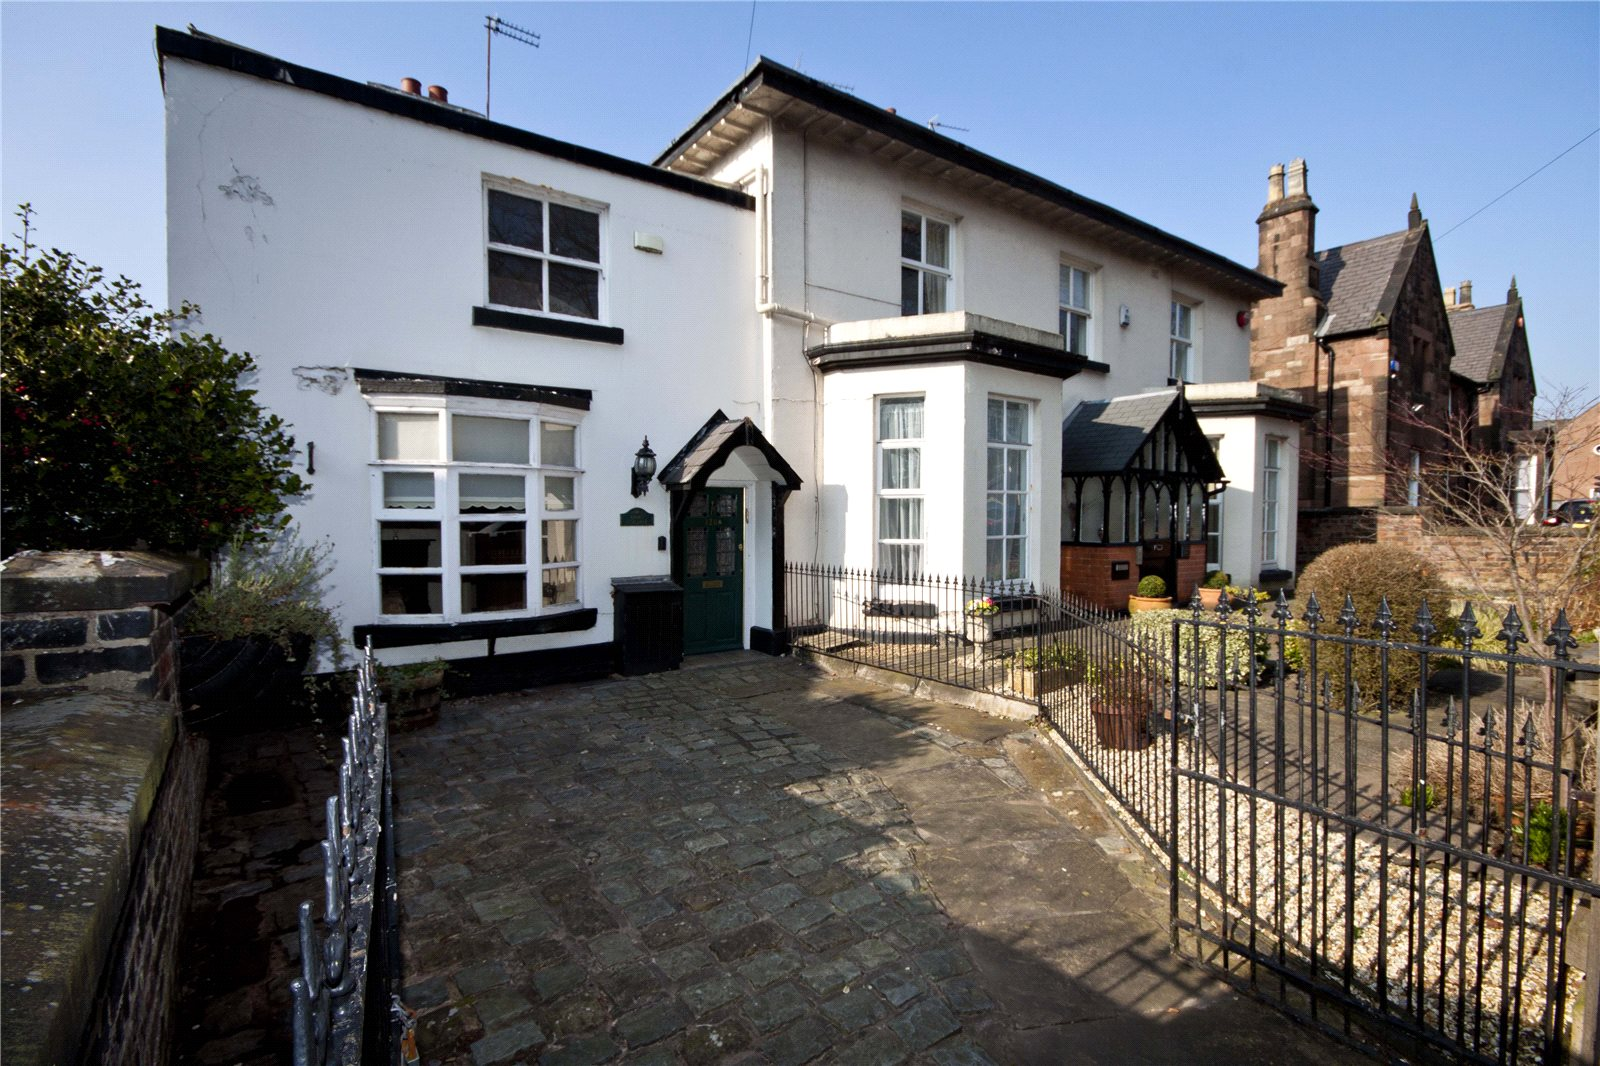 Whitegates Woolton 2 bedroom House for sale in Allerton ...